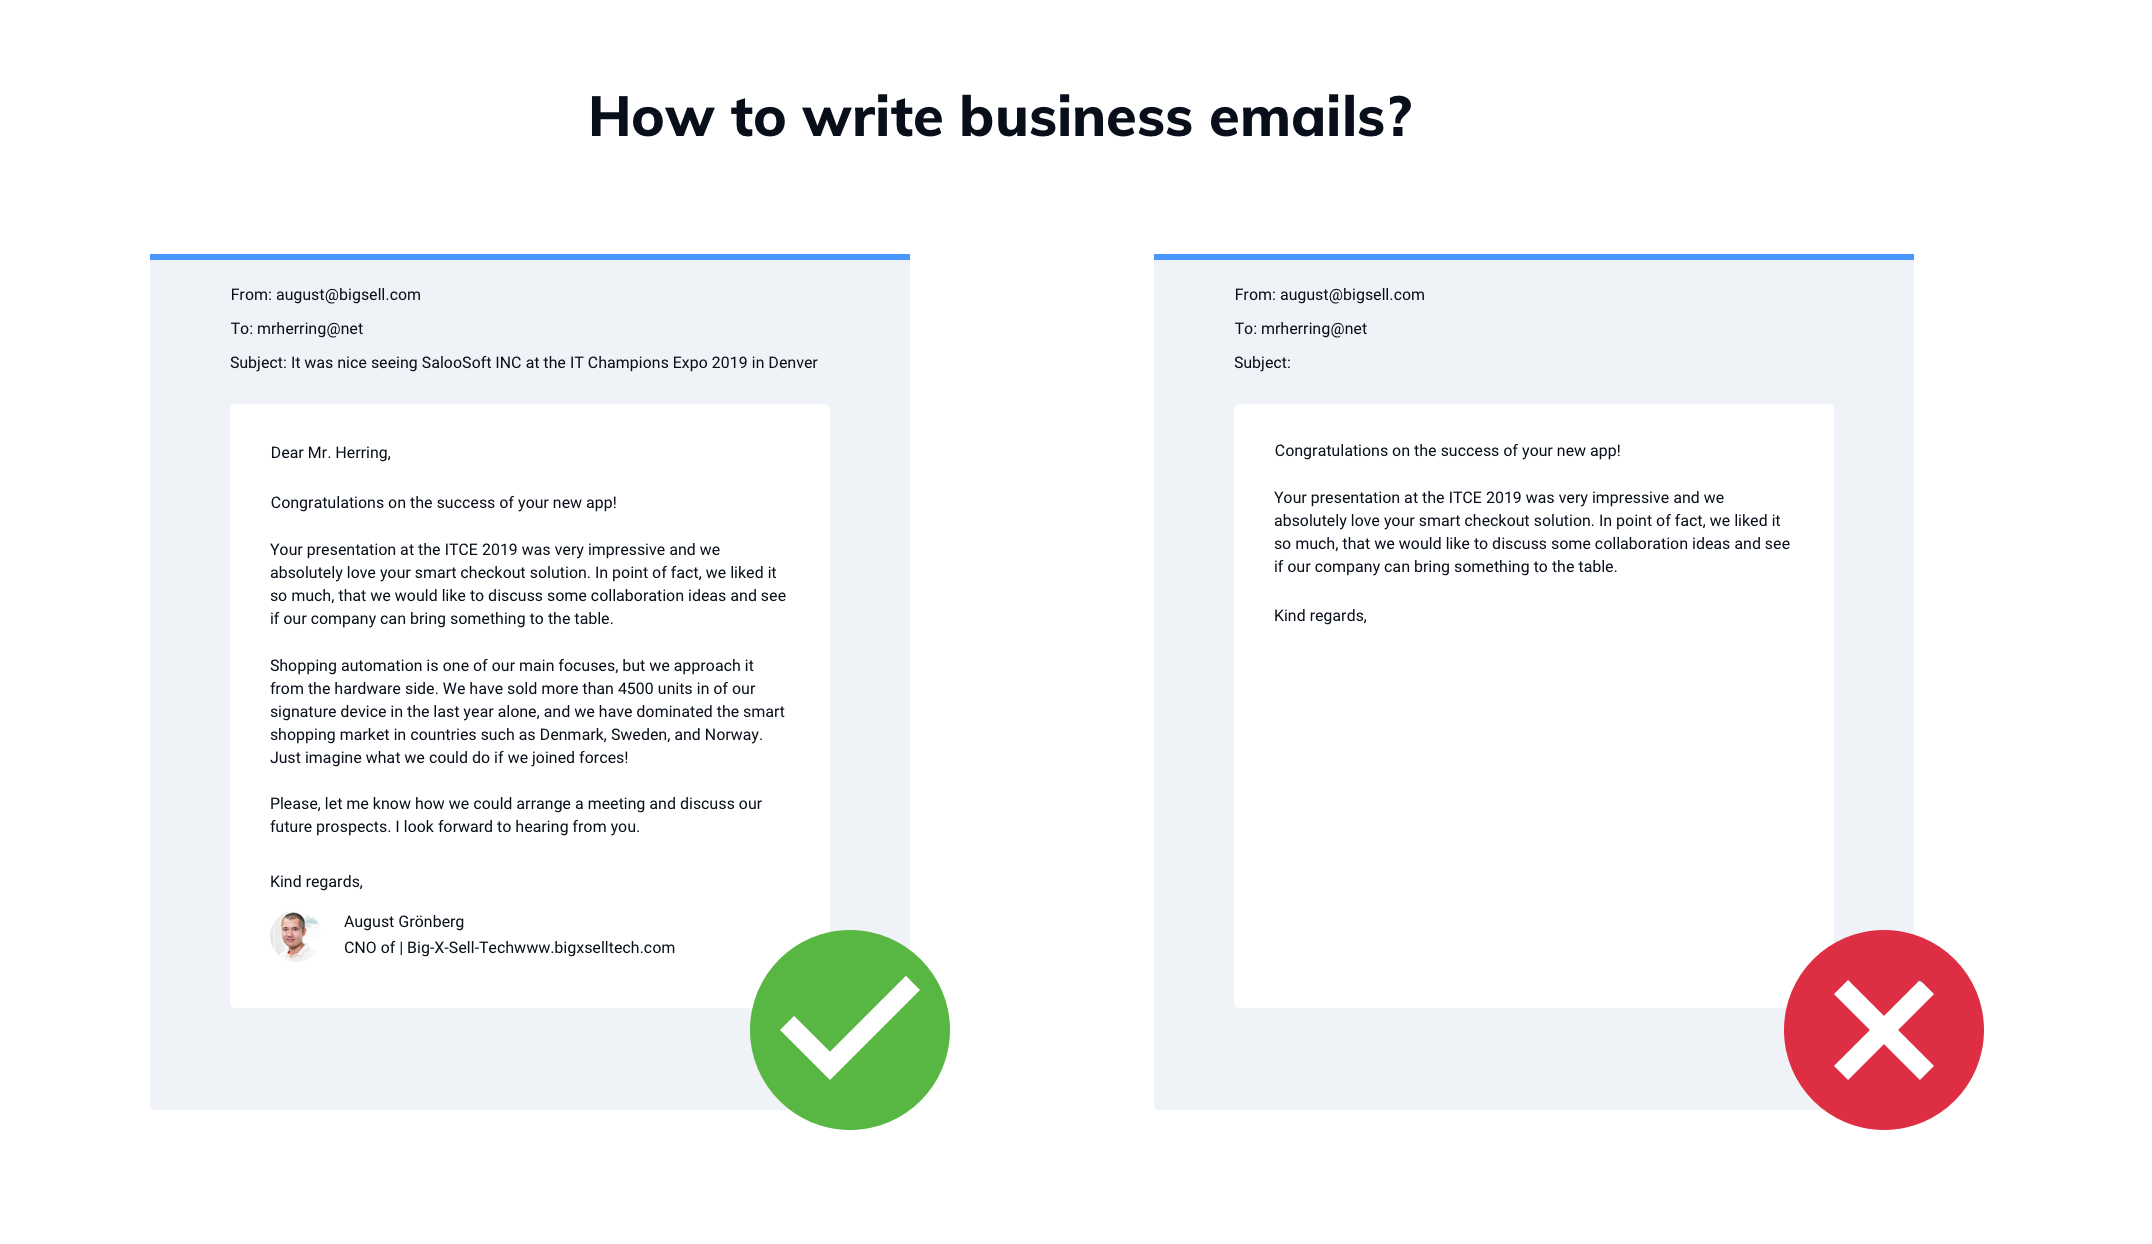 How to write business emails?